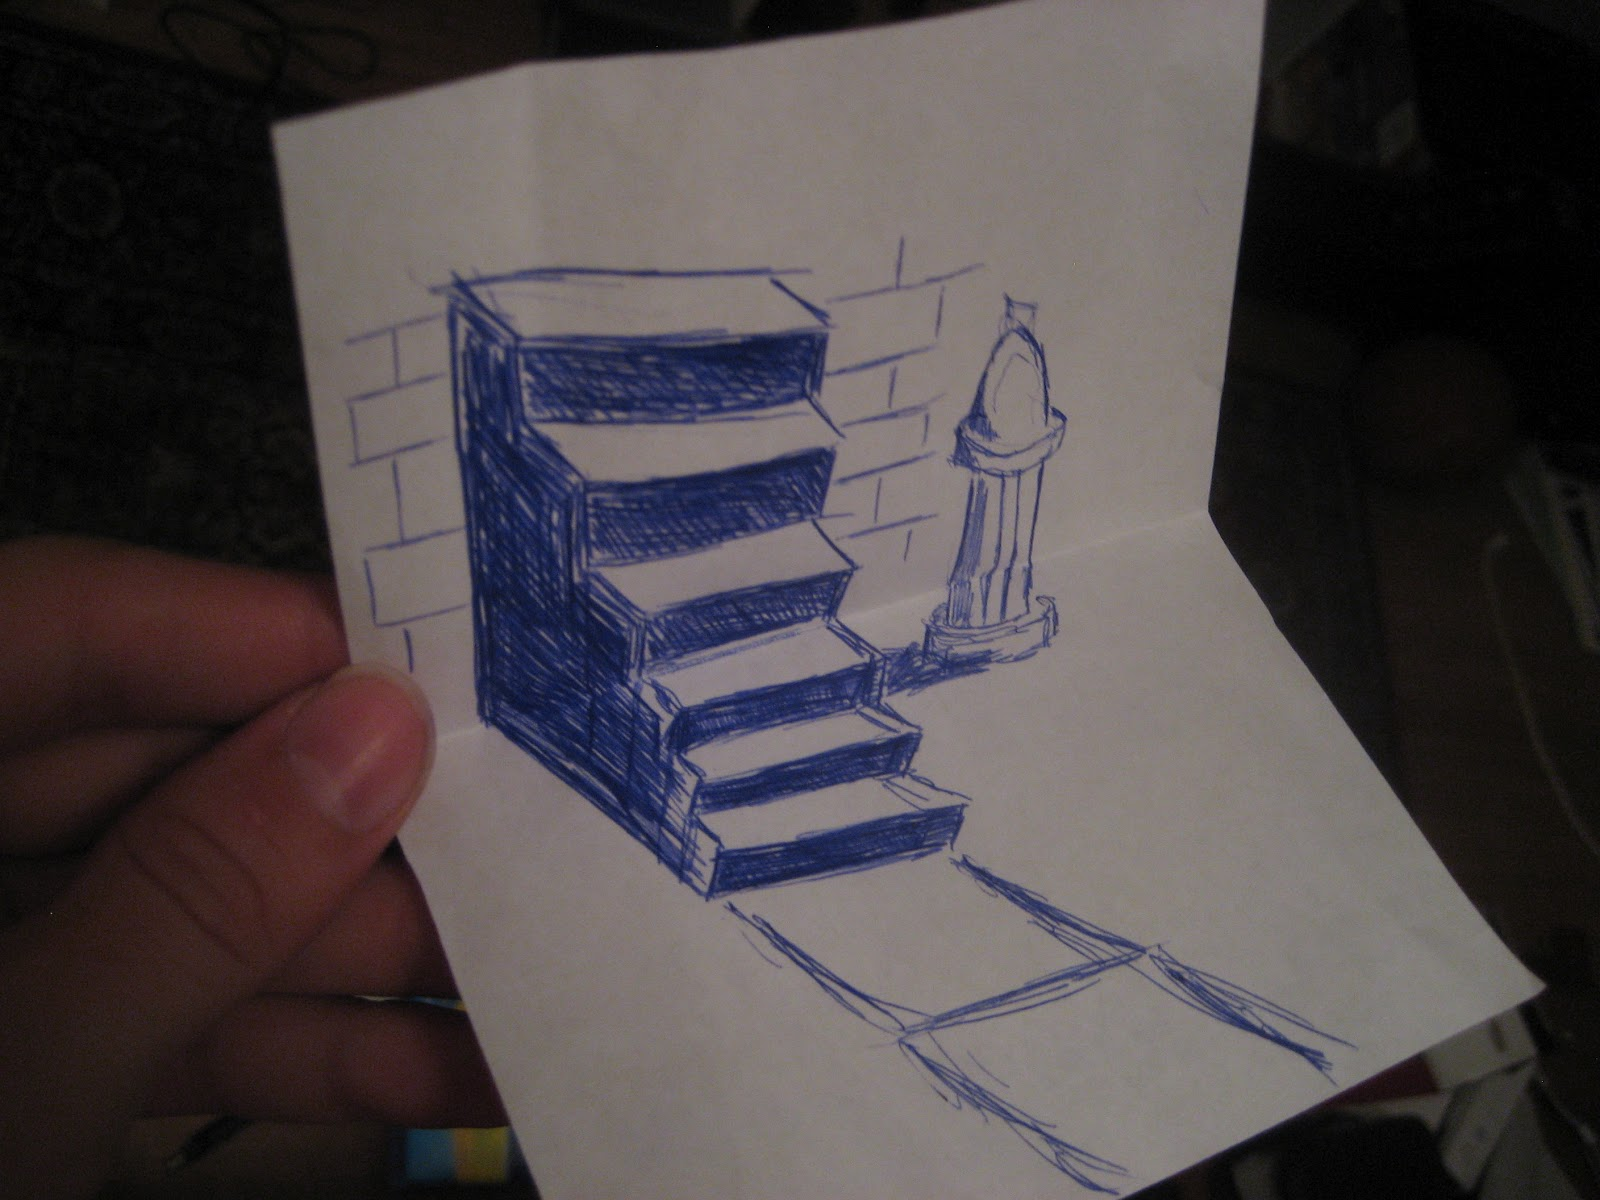 Drawn 3d 3D Does in Art: 3D